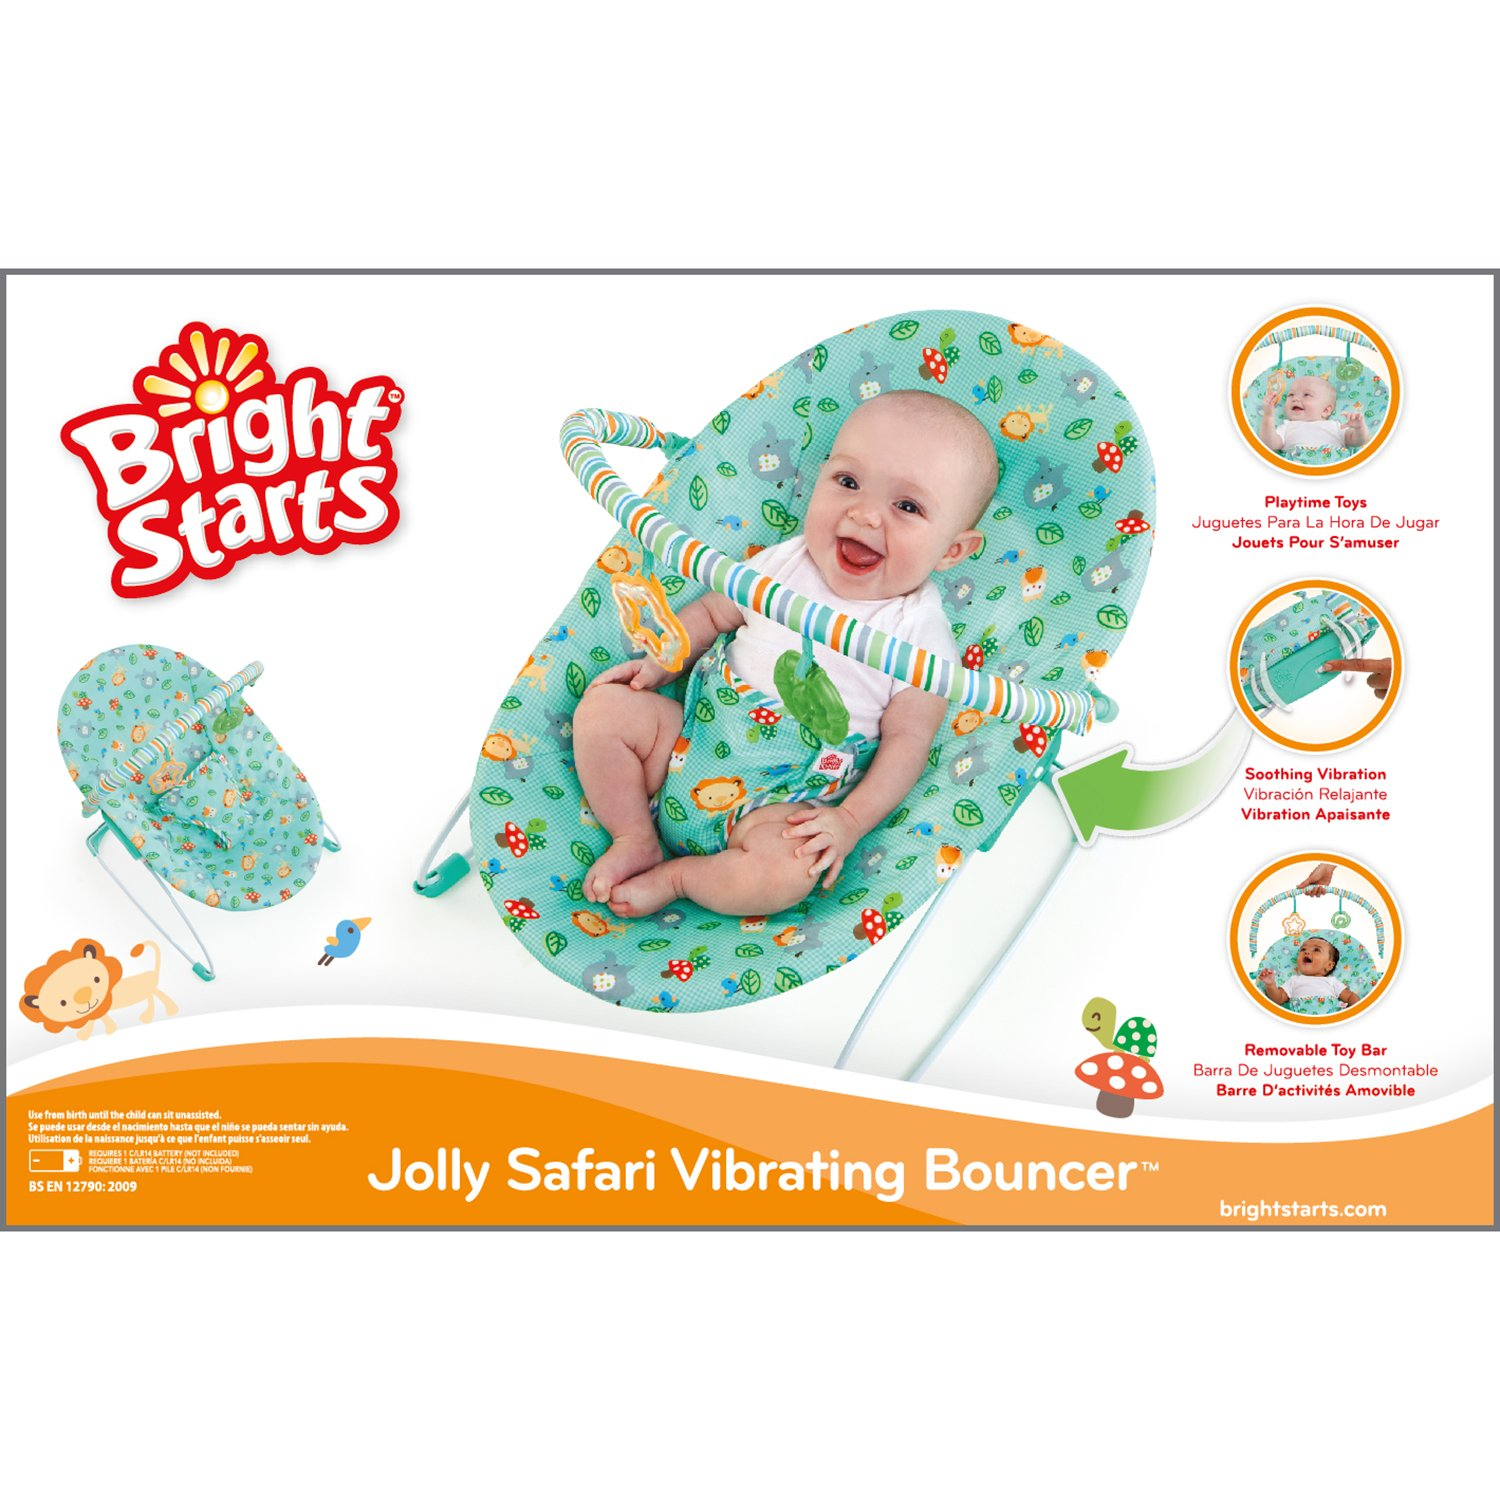 2a559fb67834 Amazon.com  Bright Starts Jolly Safari Vibrating Bouncer  Baby